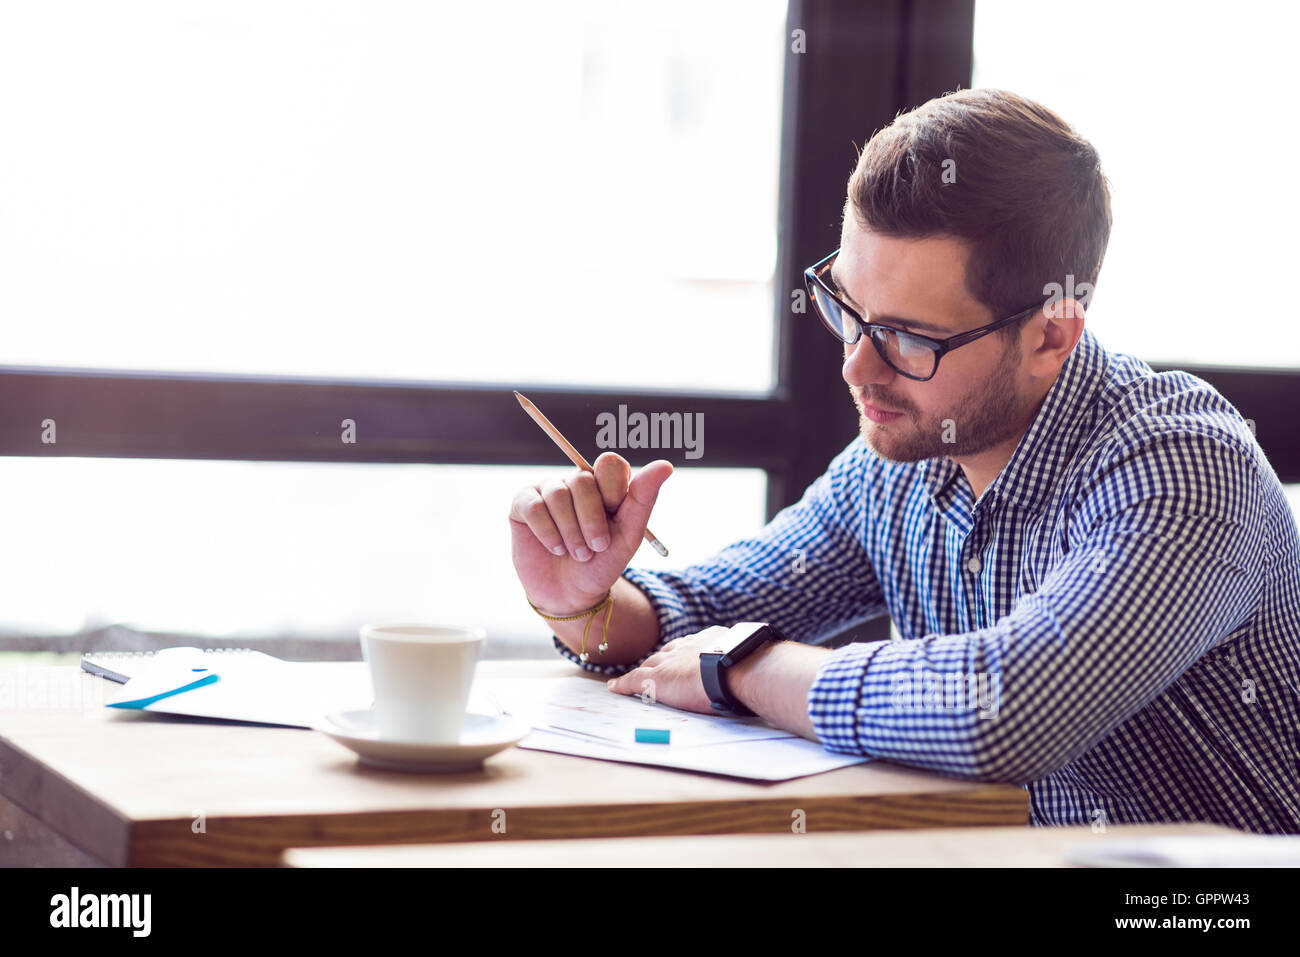 Thoughtful serious man working at the table - Stock Image